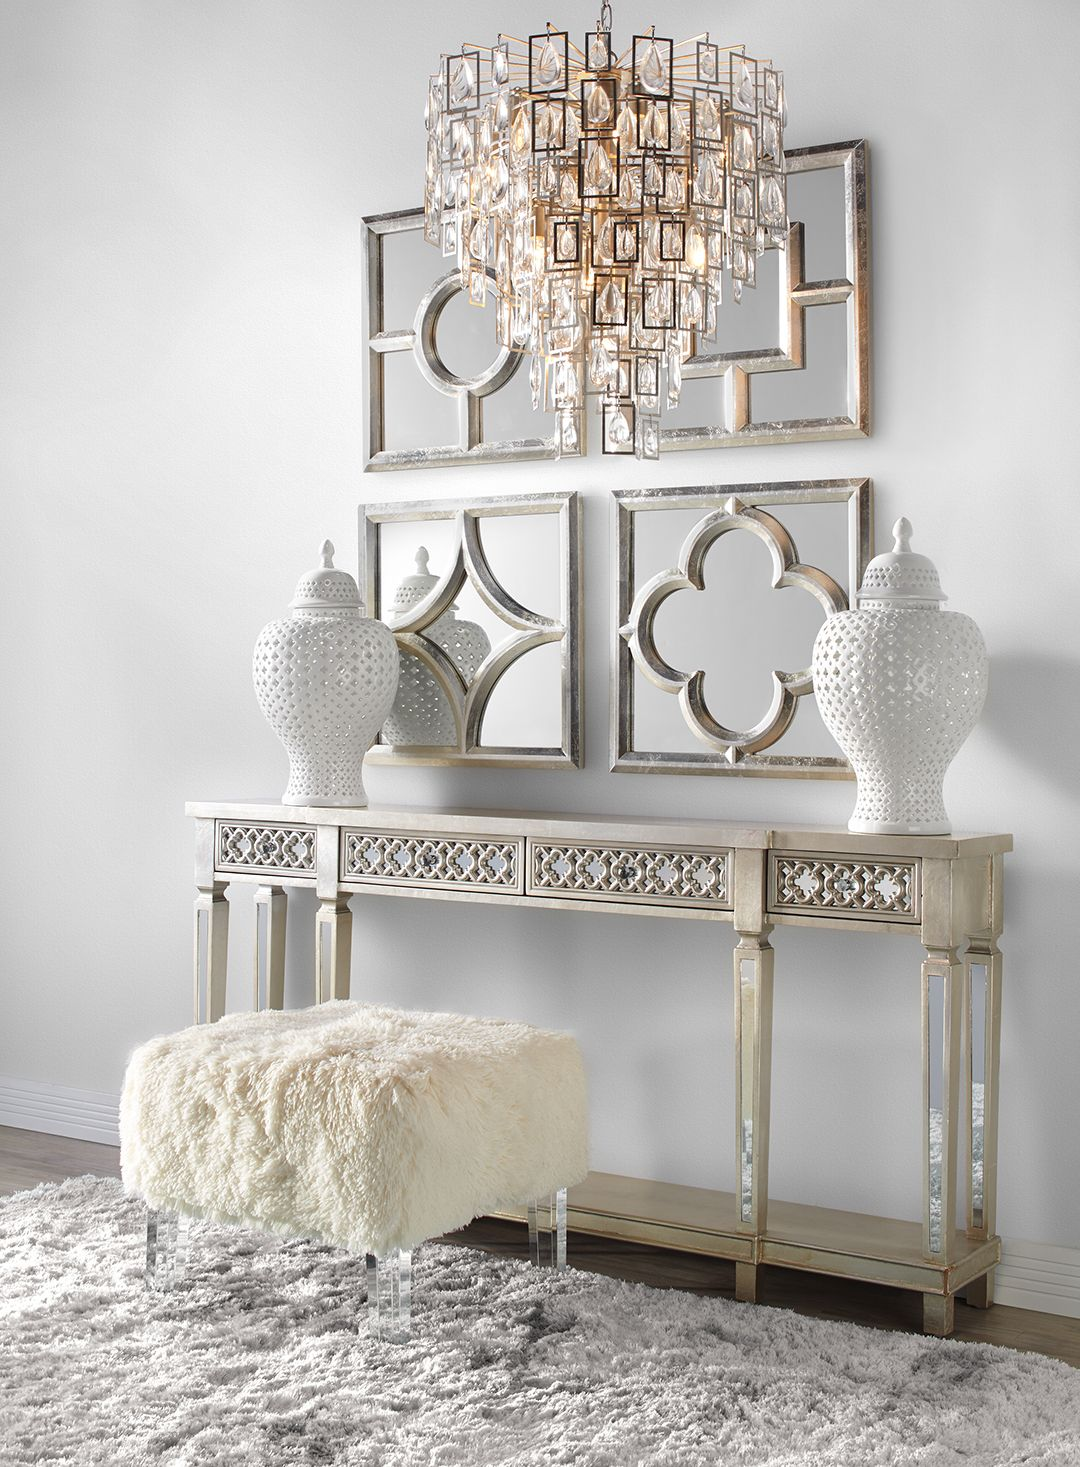 Trend Report Filigree March 2017 Fashion For The Home